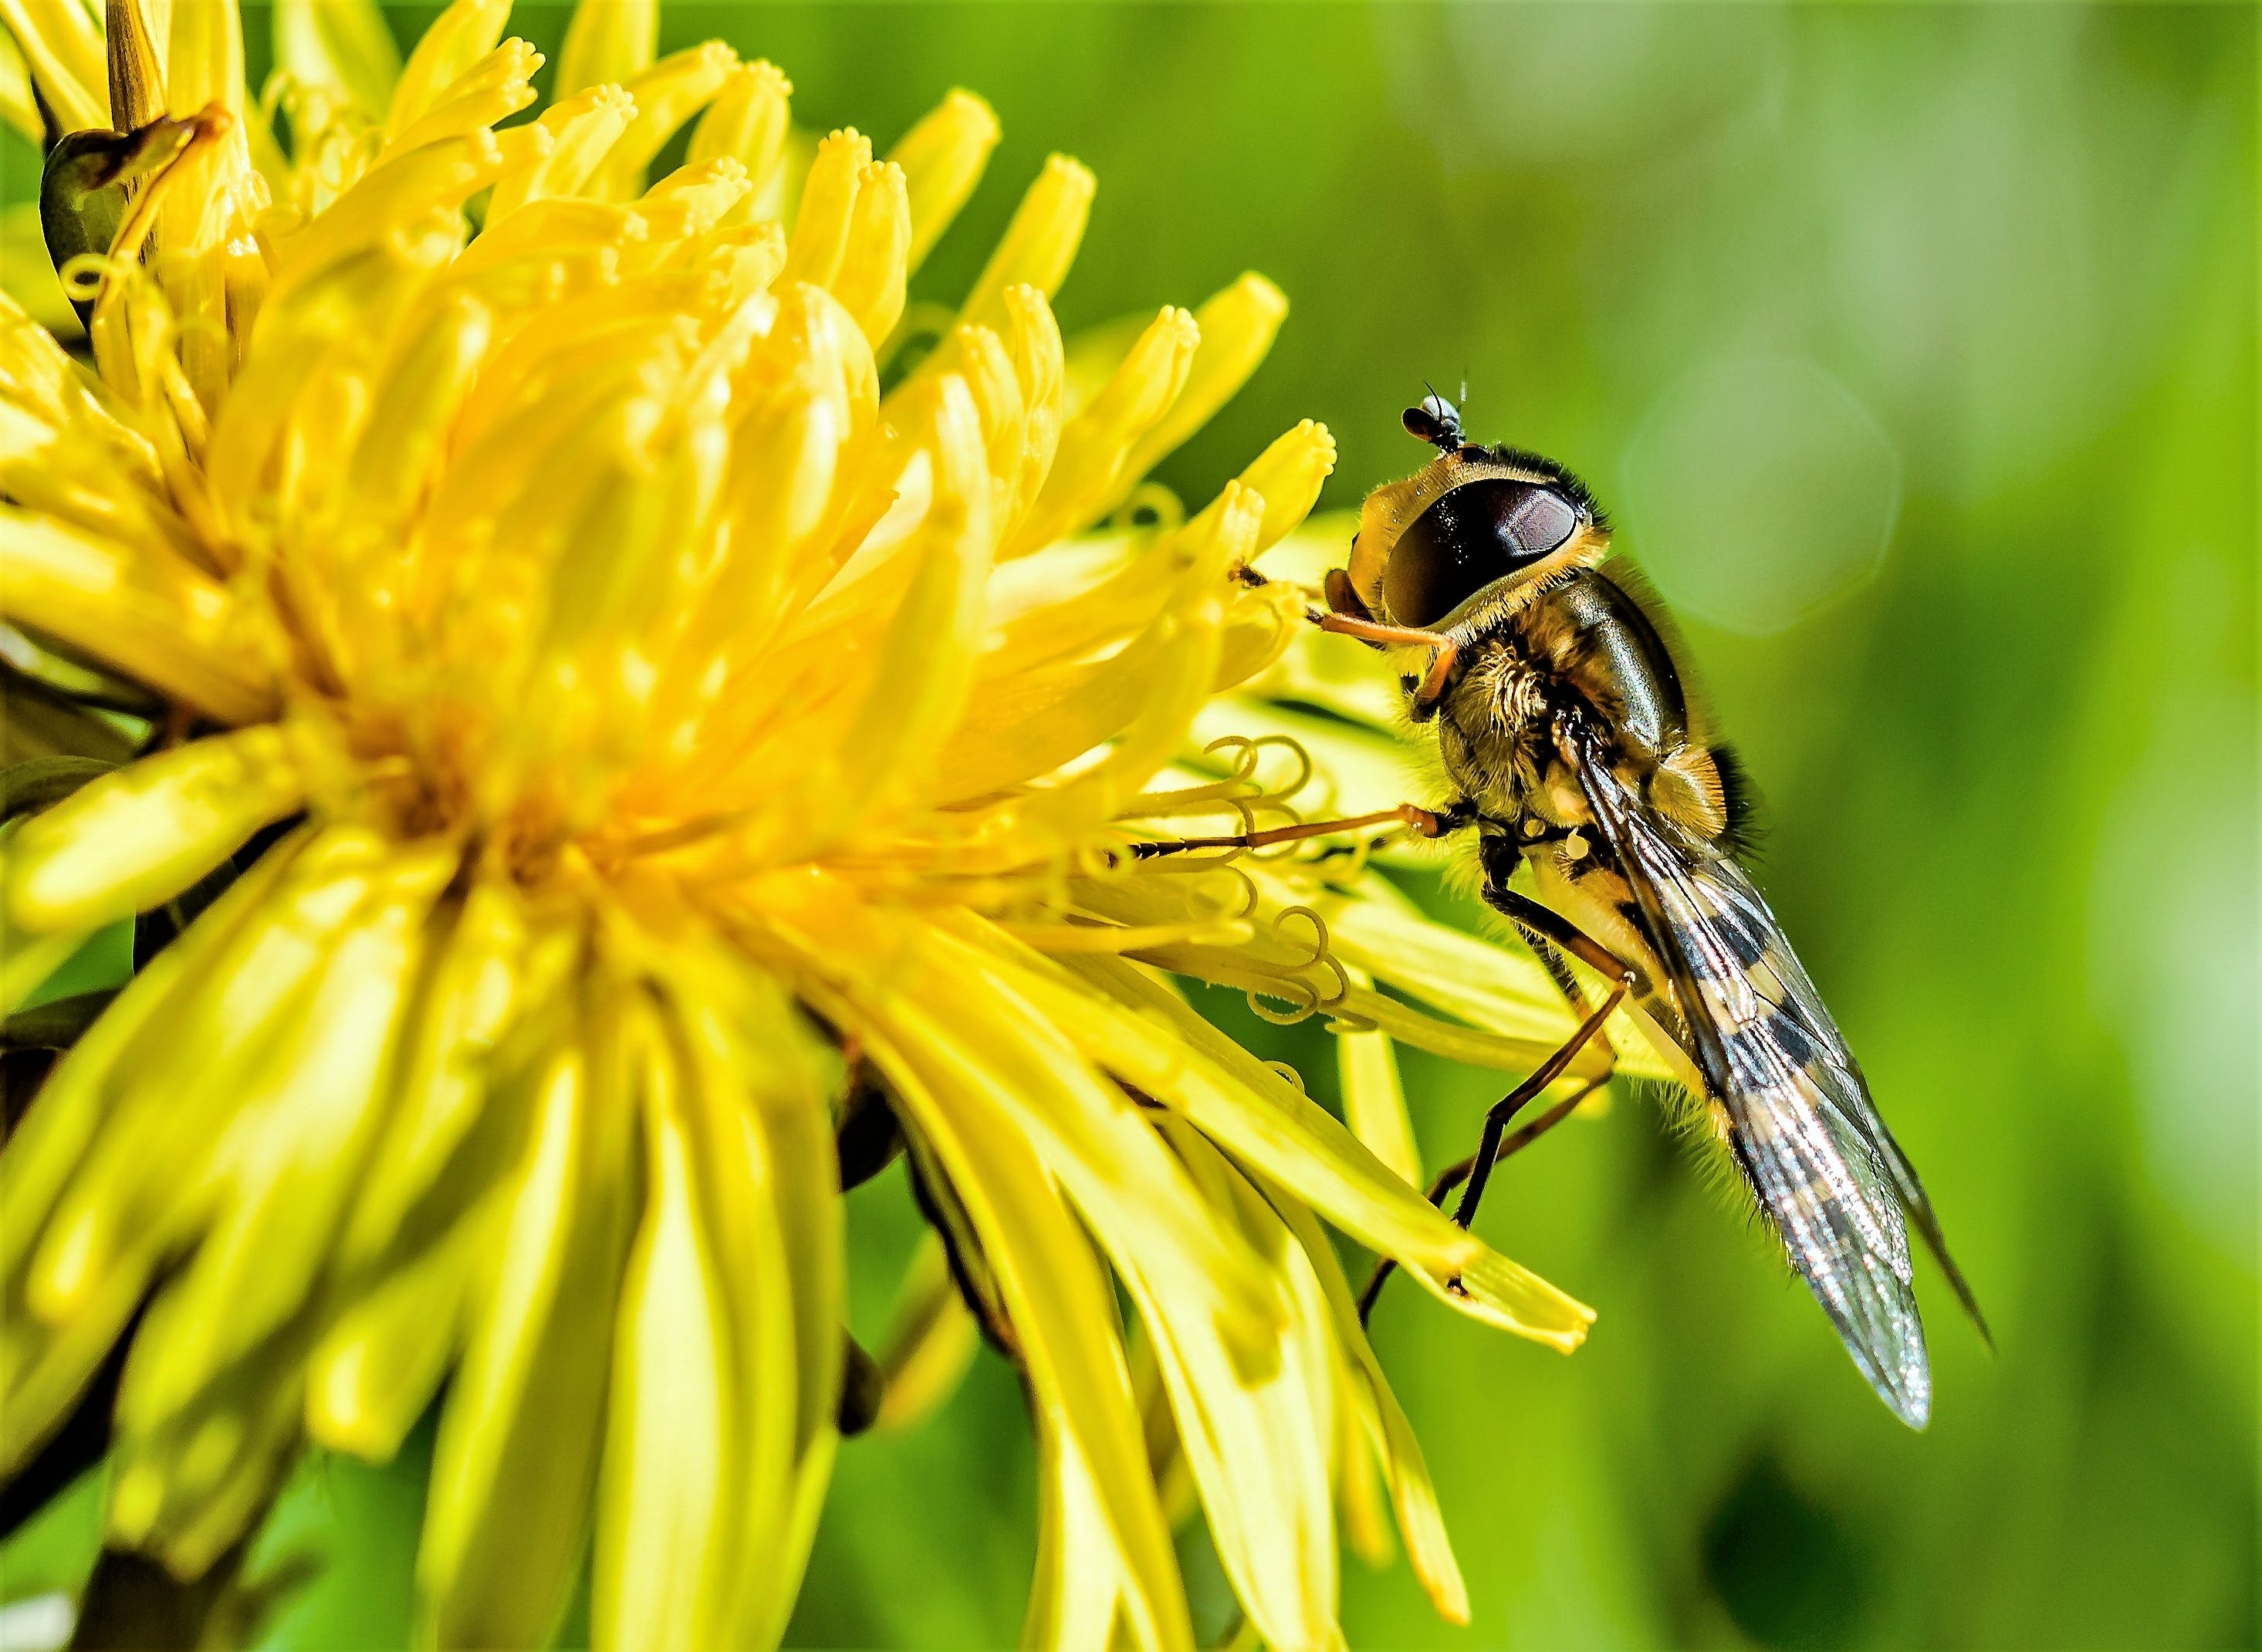 Brown and Yellow Bee on Petaled Flowers